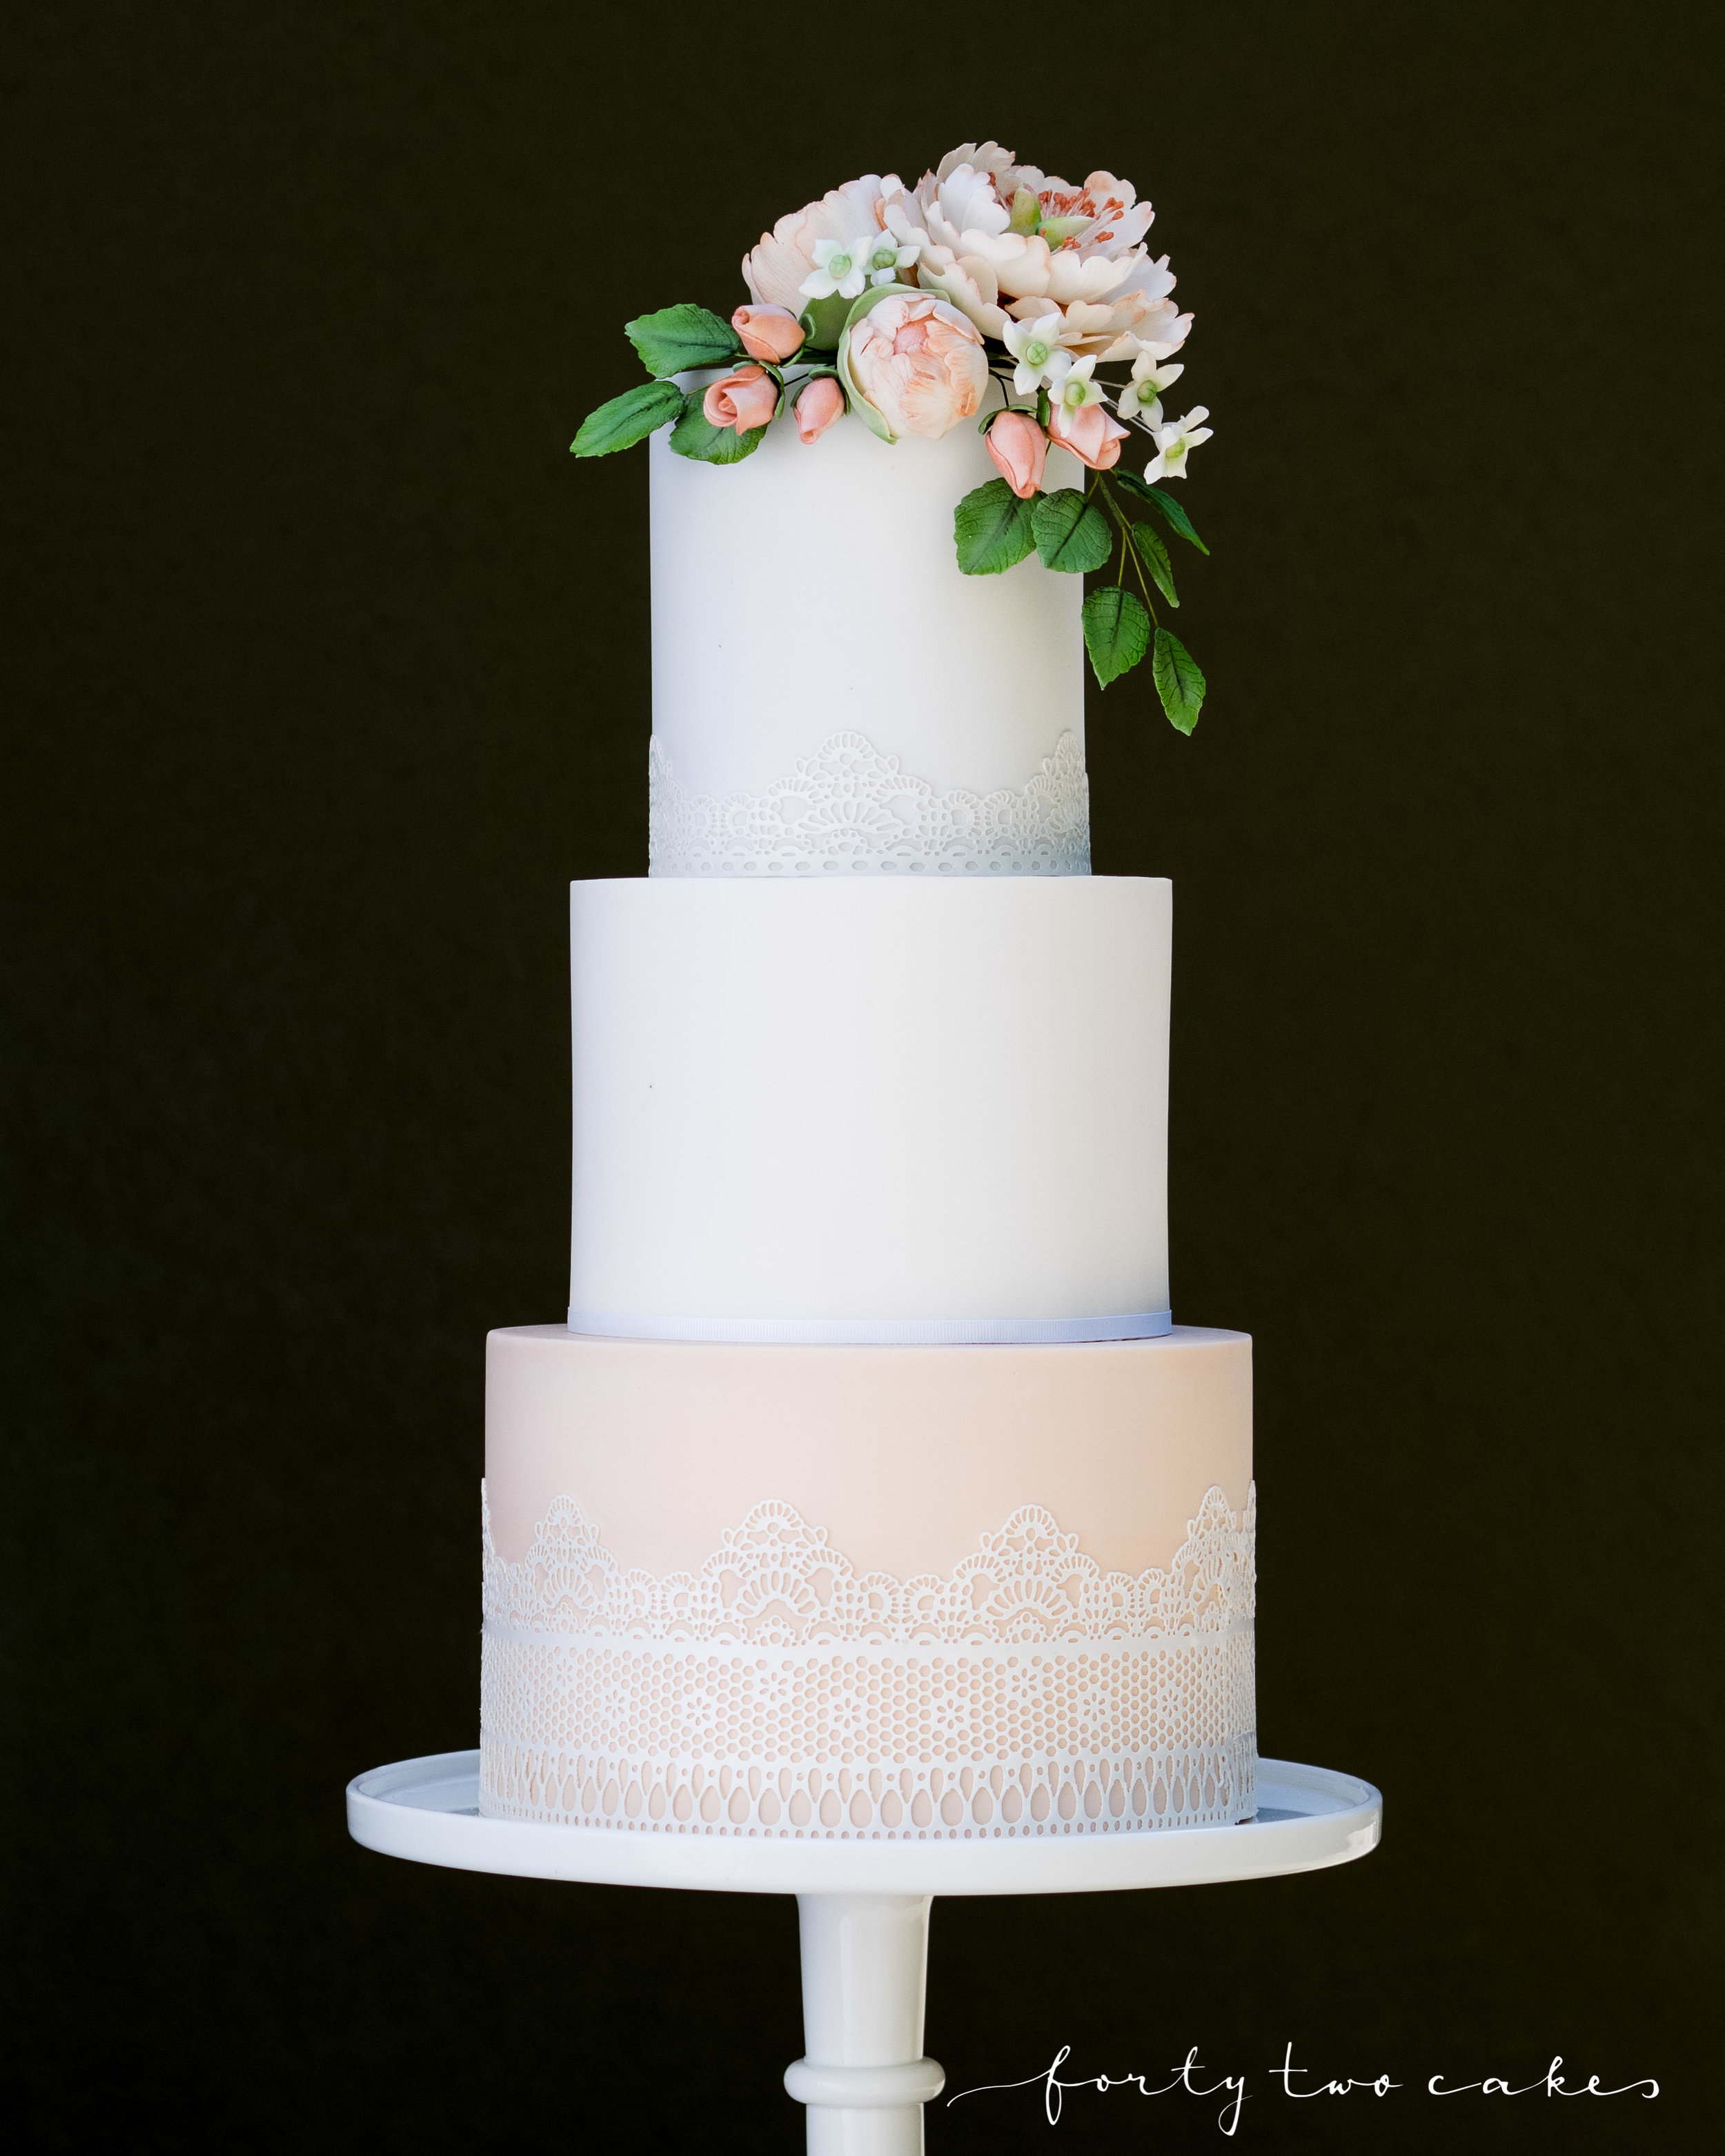 Forty-Two Cakes - Fondant-01-8.jpg